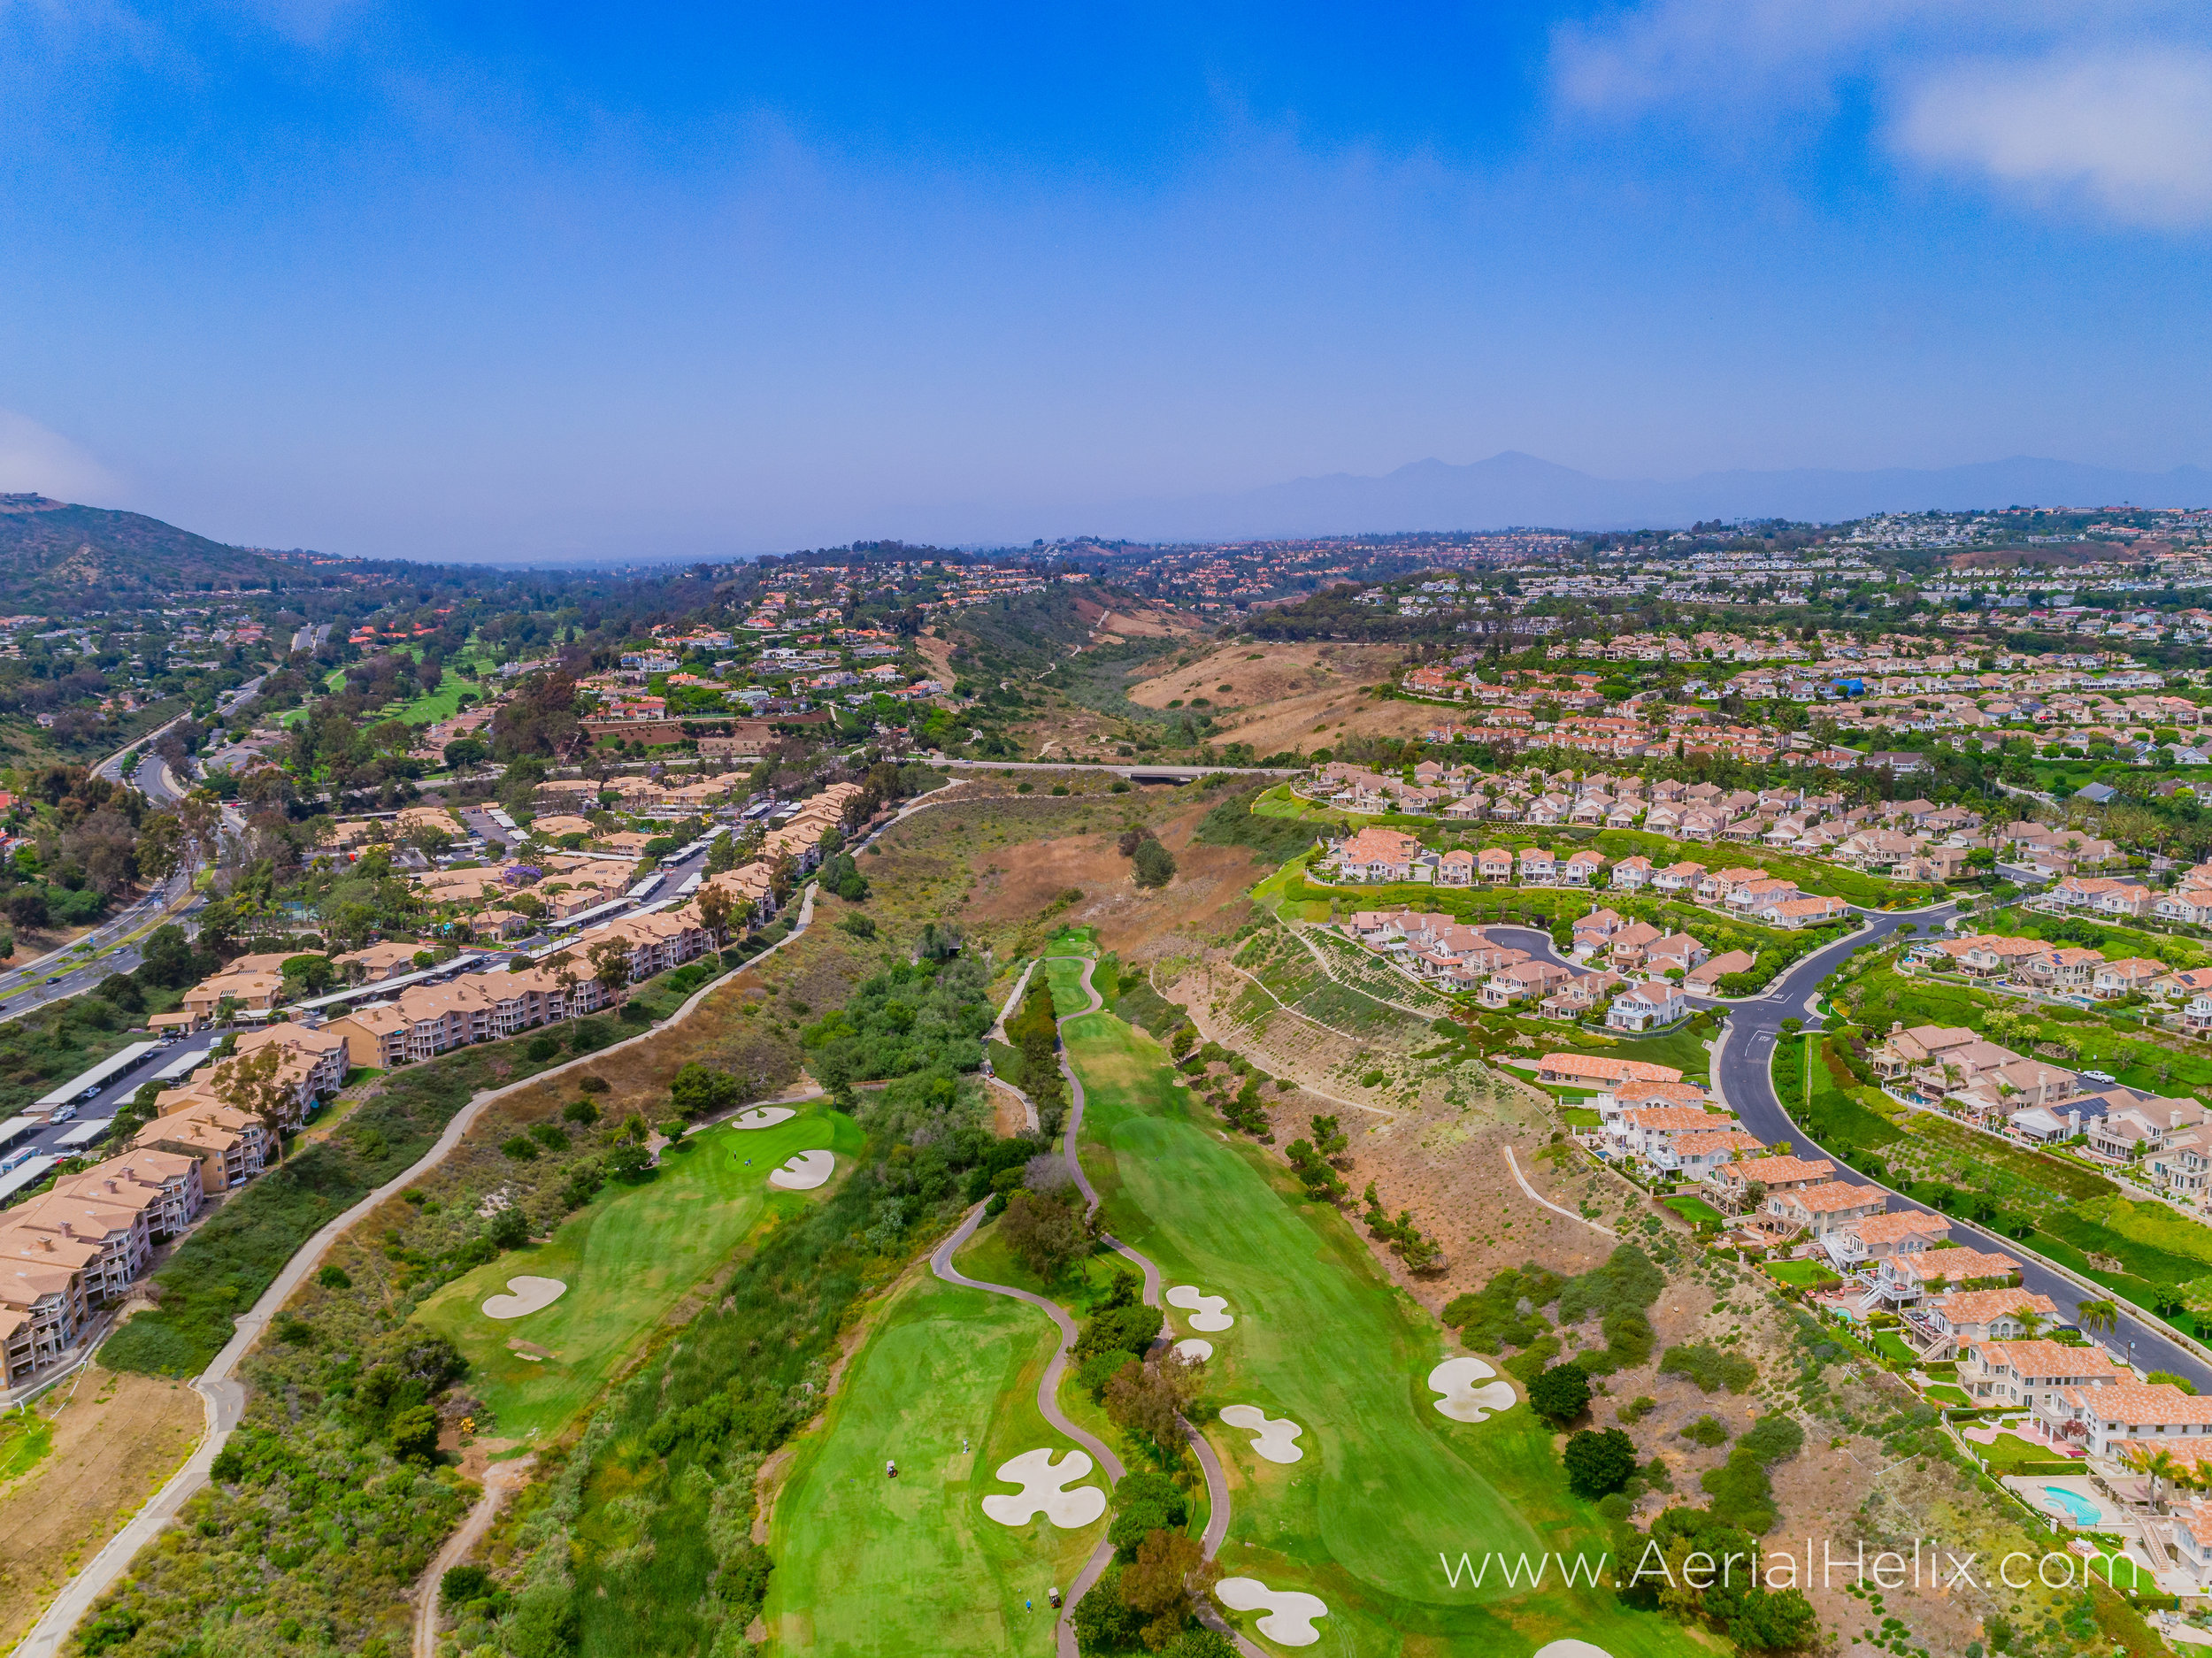 HELIX - Frigate Drive - Real Estate Drone Photographer-3.jpg